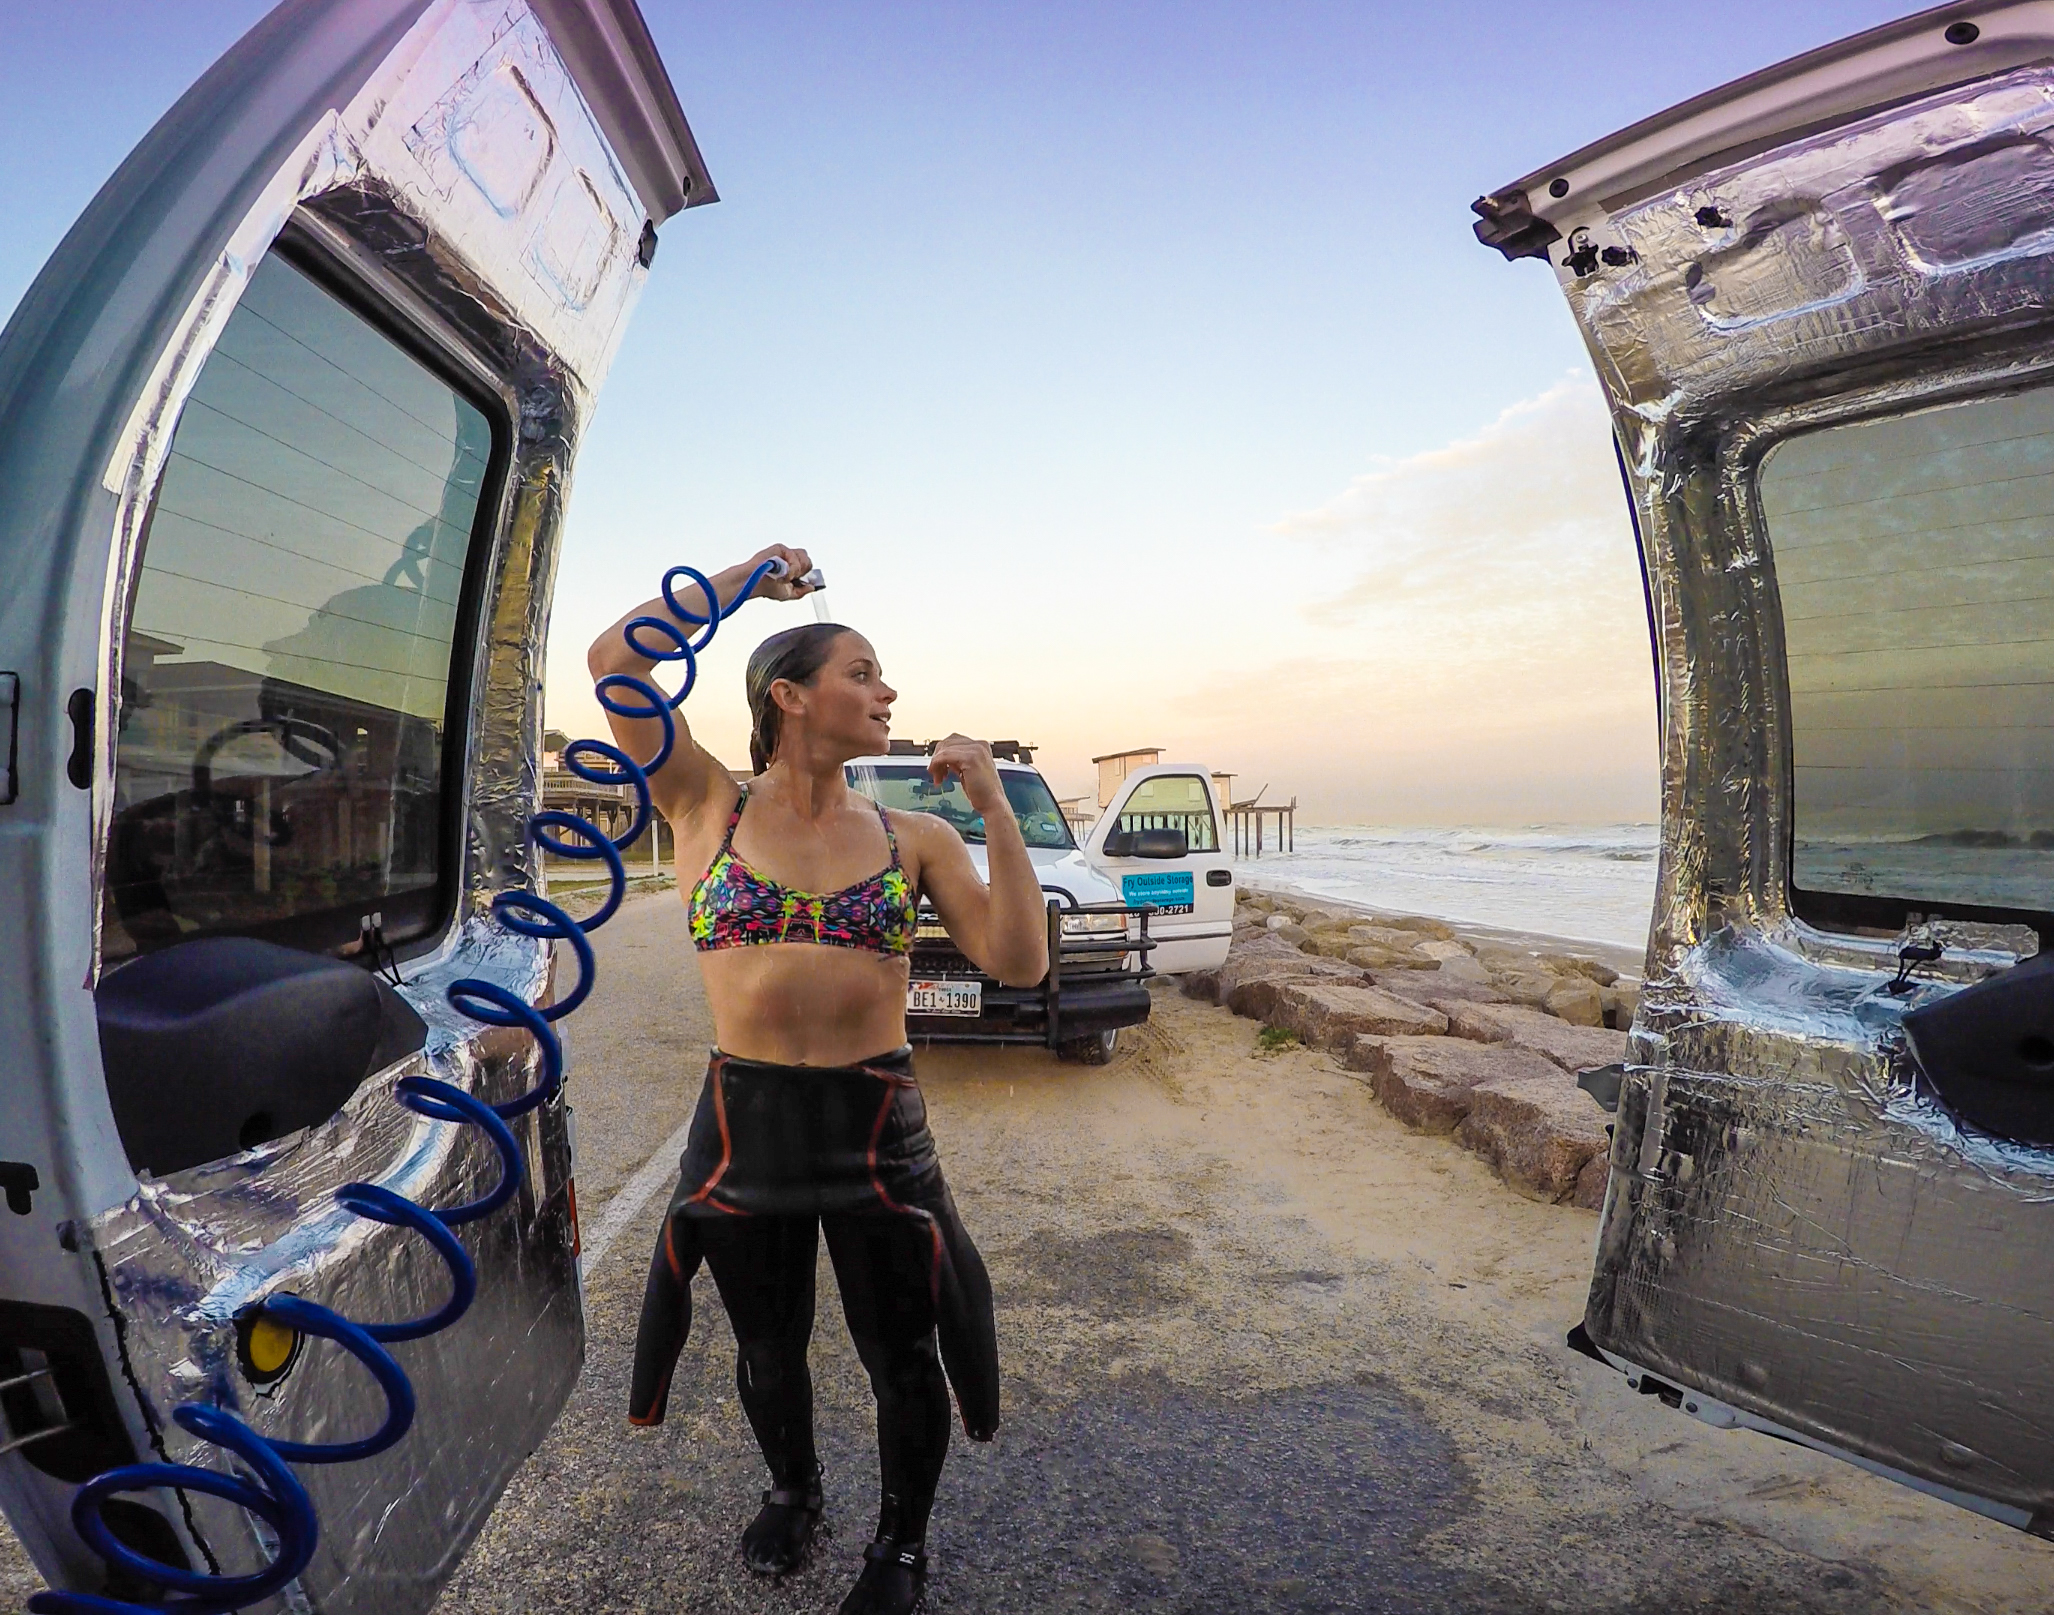 As a surfer, I will constantly need to be washing my salty wetsuits and rinsing off on the roadside. I went on a quest to find the best portable shower system and discovered  Big Kahuna !